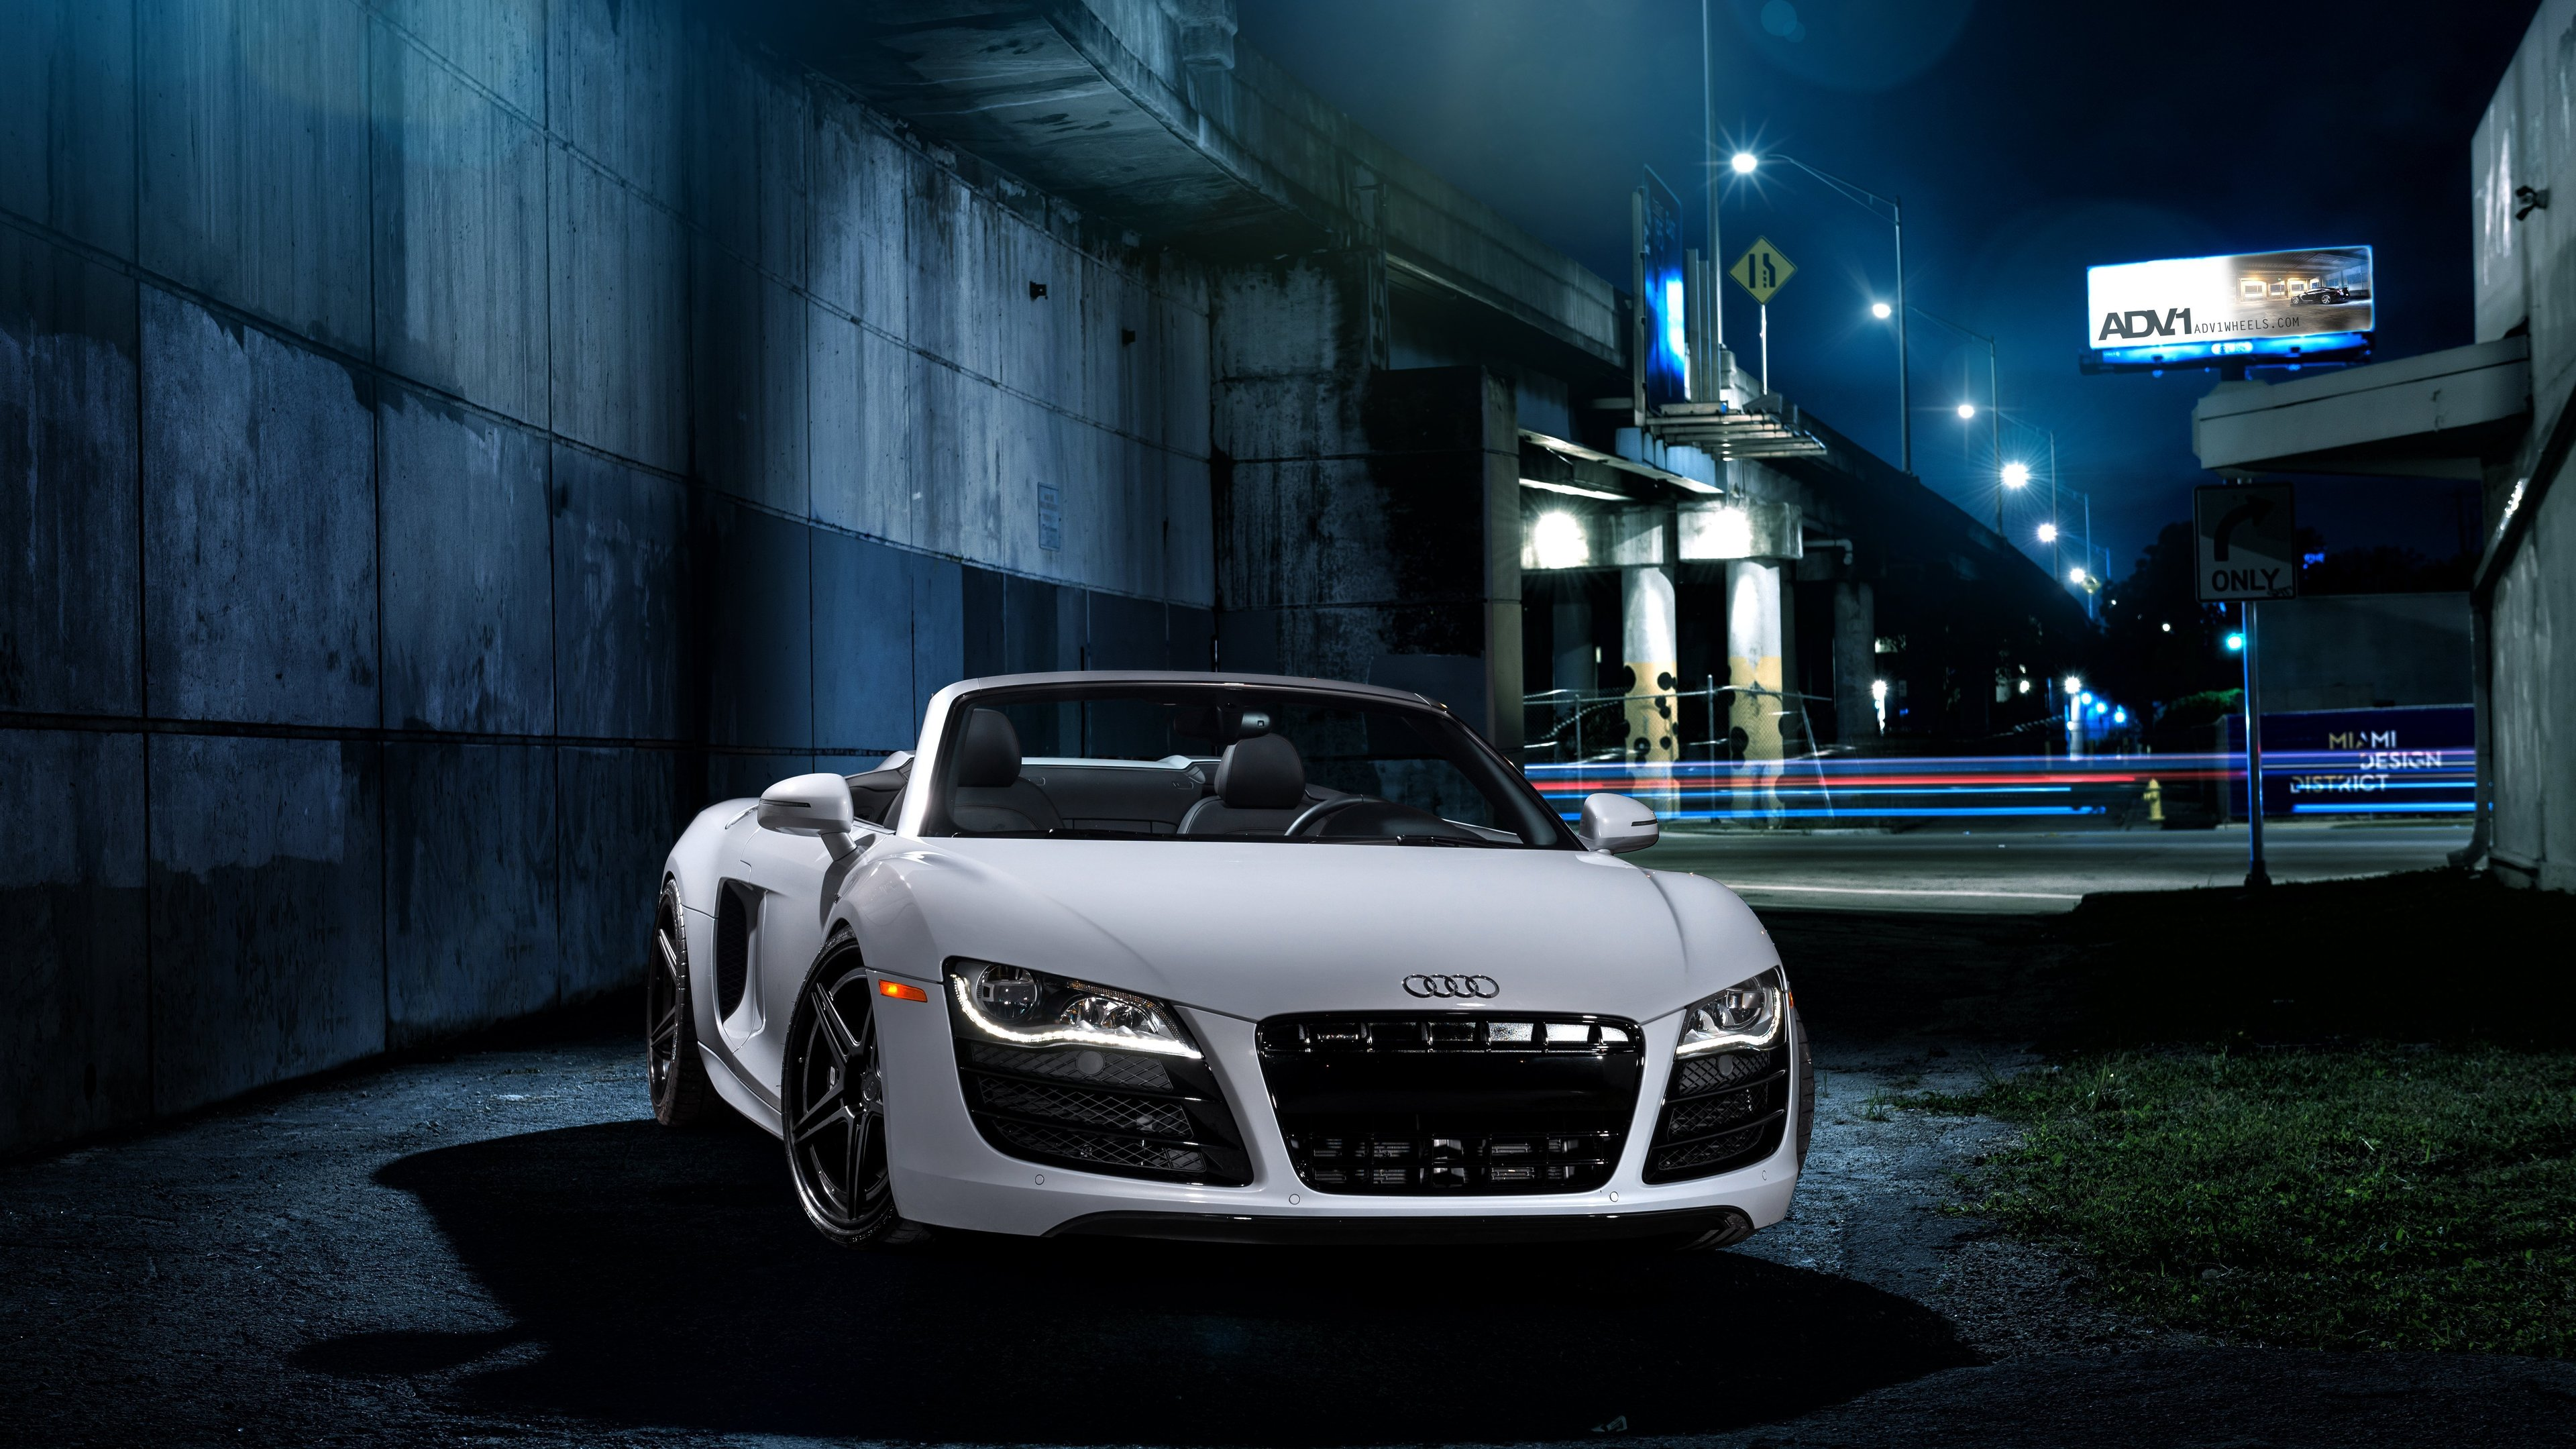 audi r8 rfx7 brushed titanium 4k 1557260930 - Audi R8 RFX7 Brushed Titanium 4k - hd-wallpapers, cars wallpapers, audi wallpapers, audi r8 wallpapers, 5k wallpapers, 4k-wallpapers, 2019 cars wallpapers